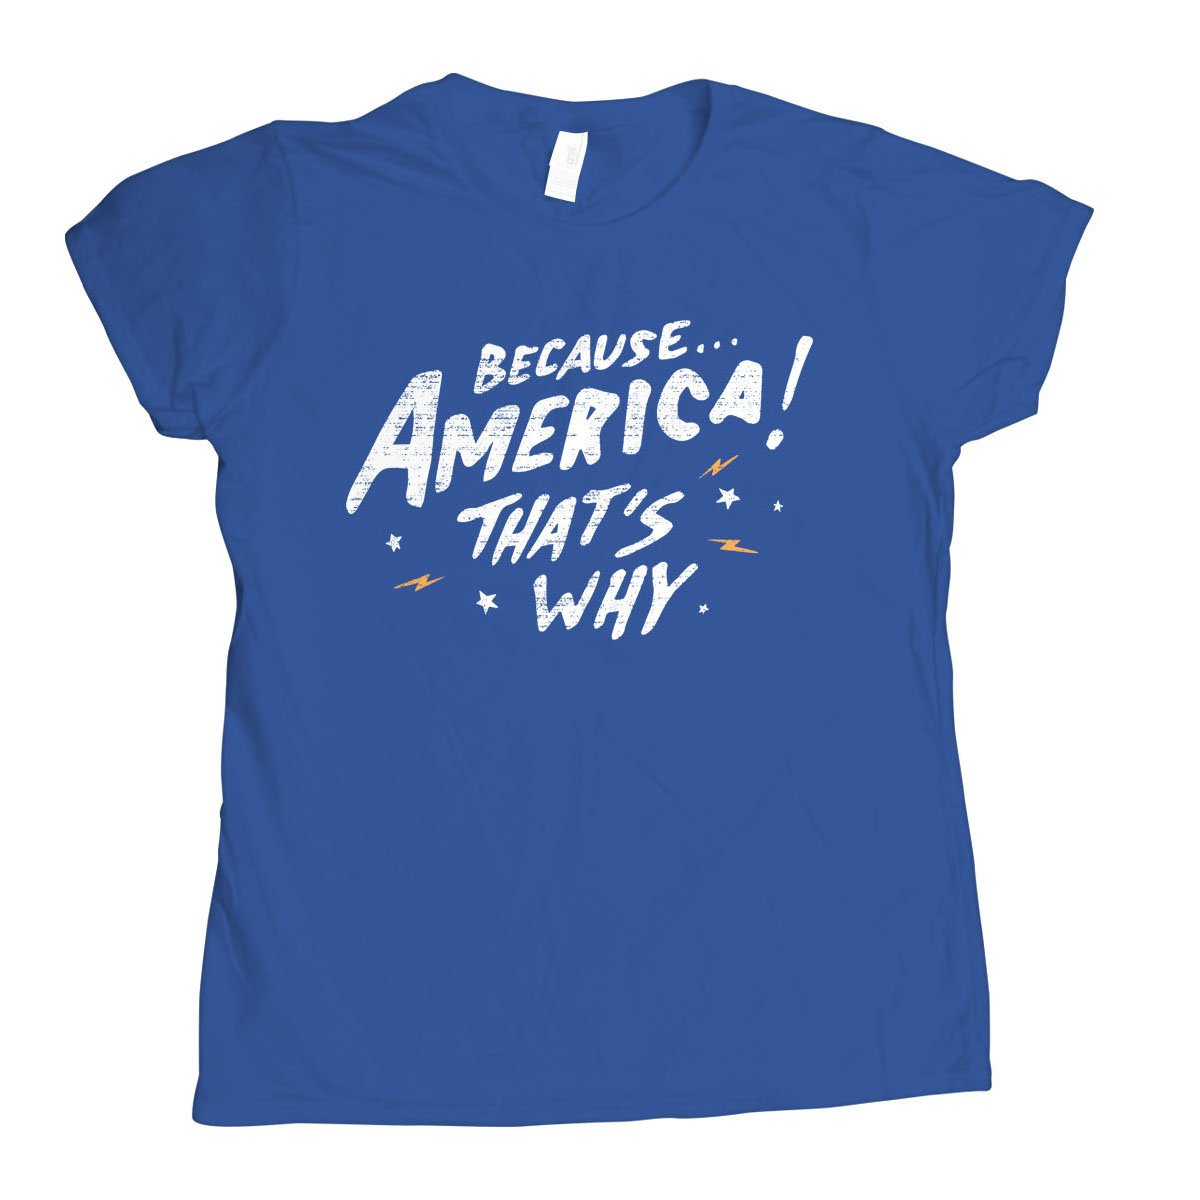 Because America! That's Why on Womens T-Shirt